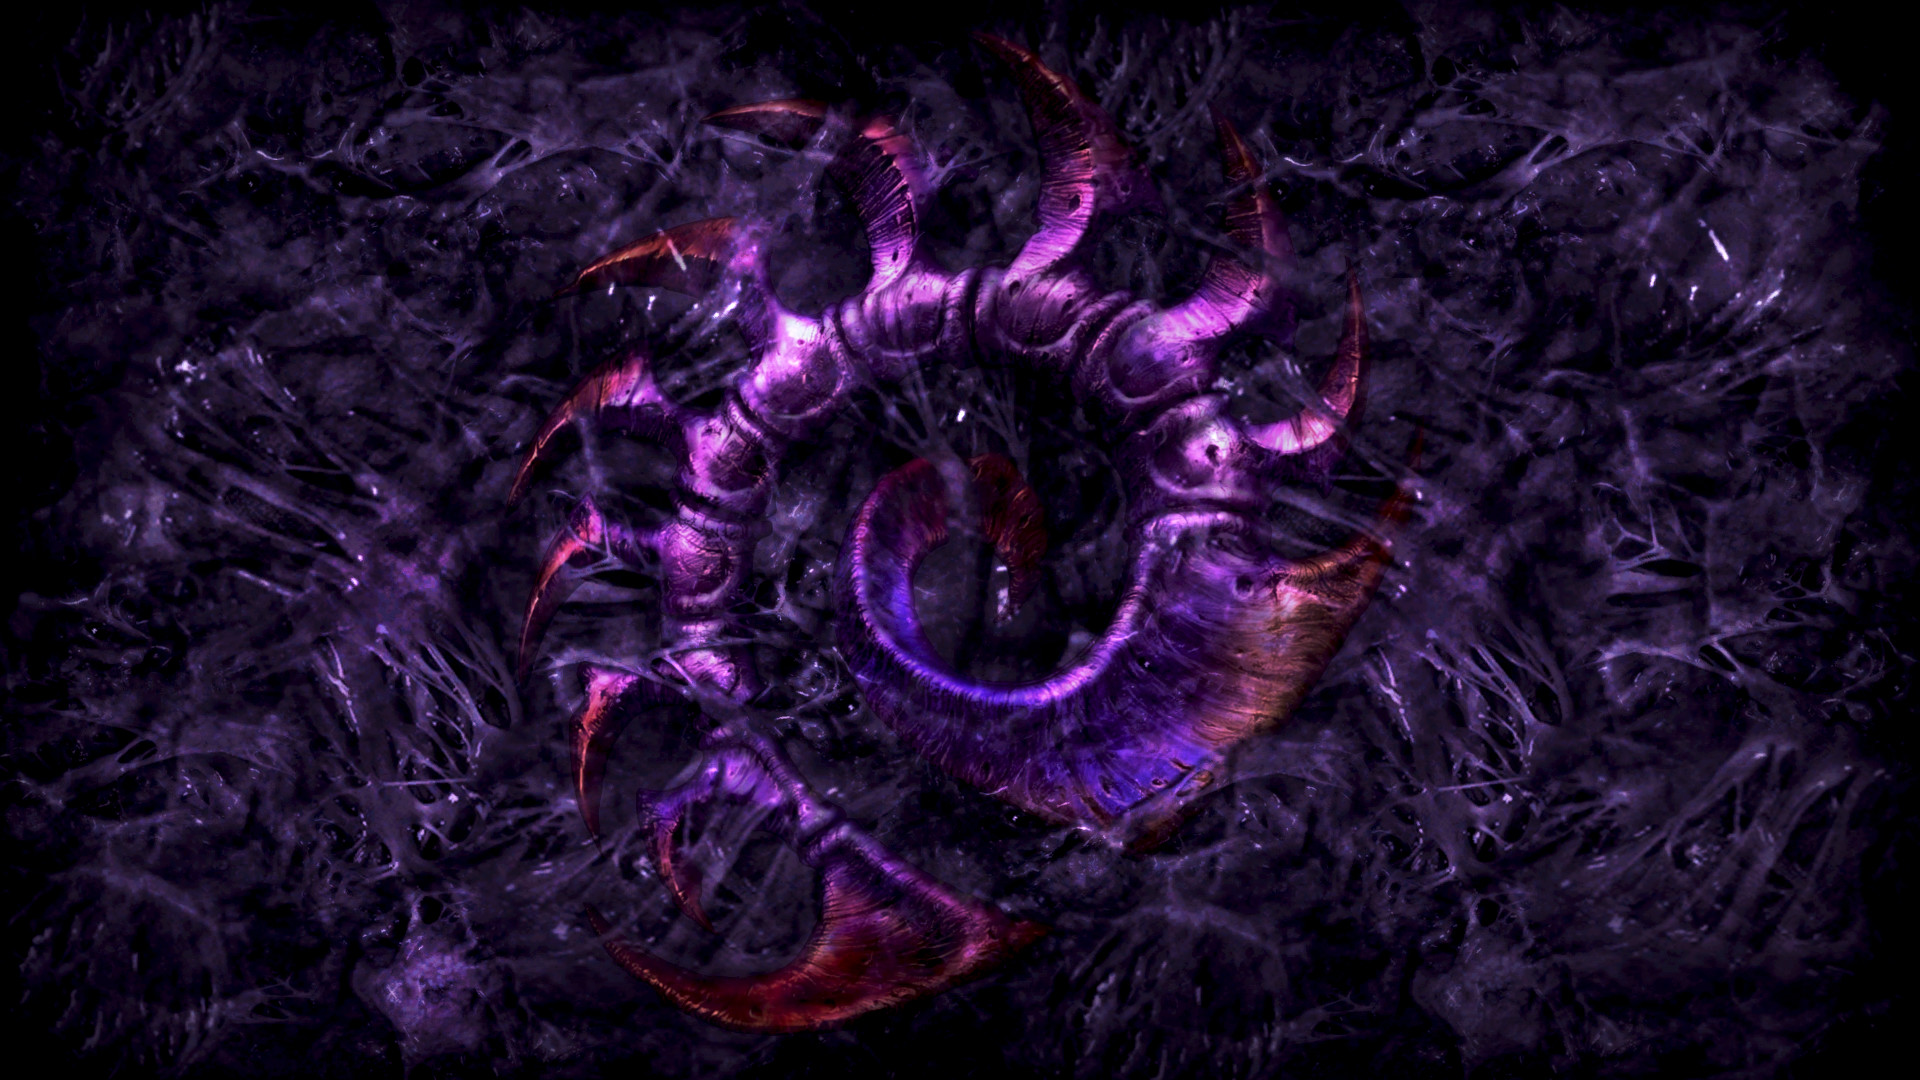 Starcraft 2 Zerg Wallpaper (73+ images)